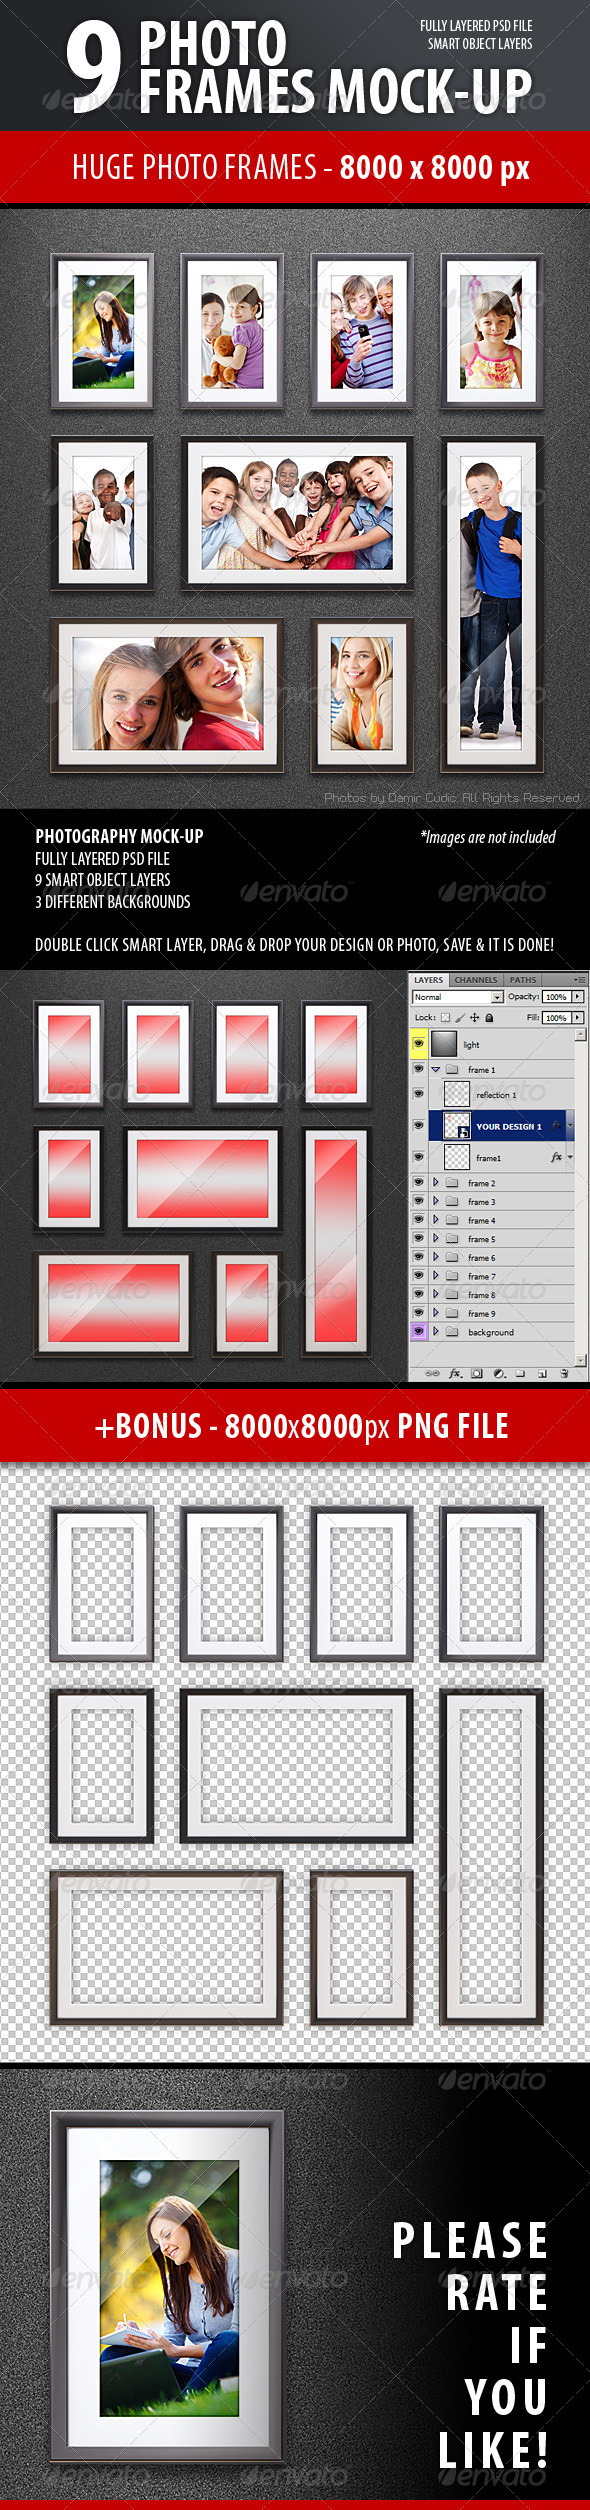 Photo Frames Mock-up - Photo Templates Graphics